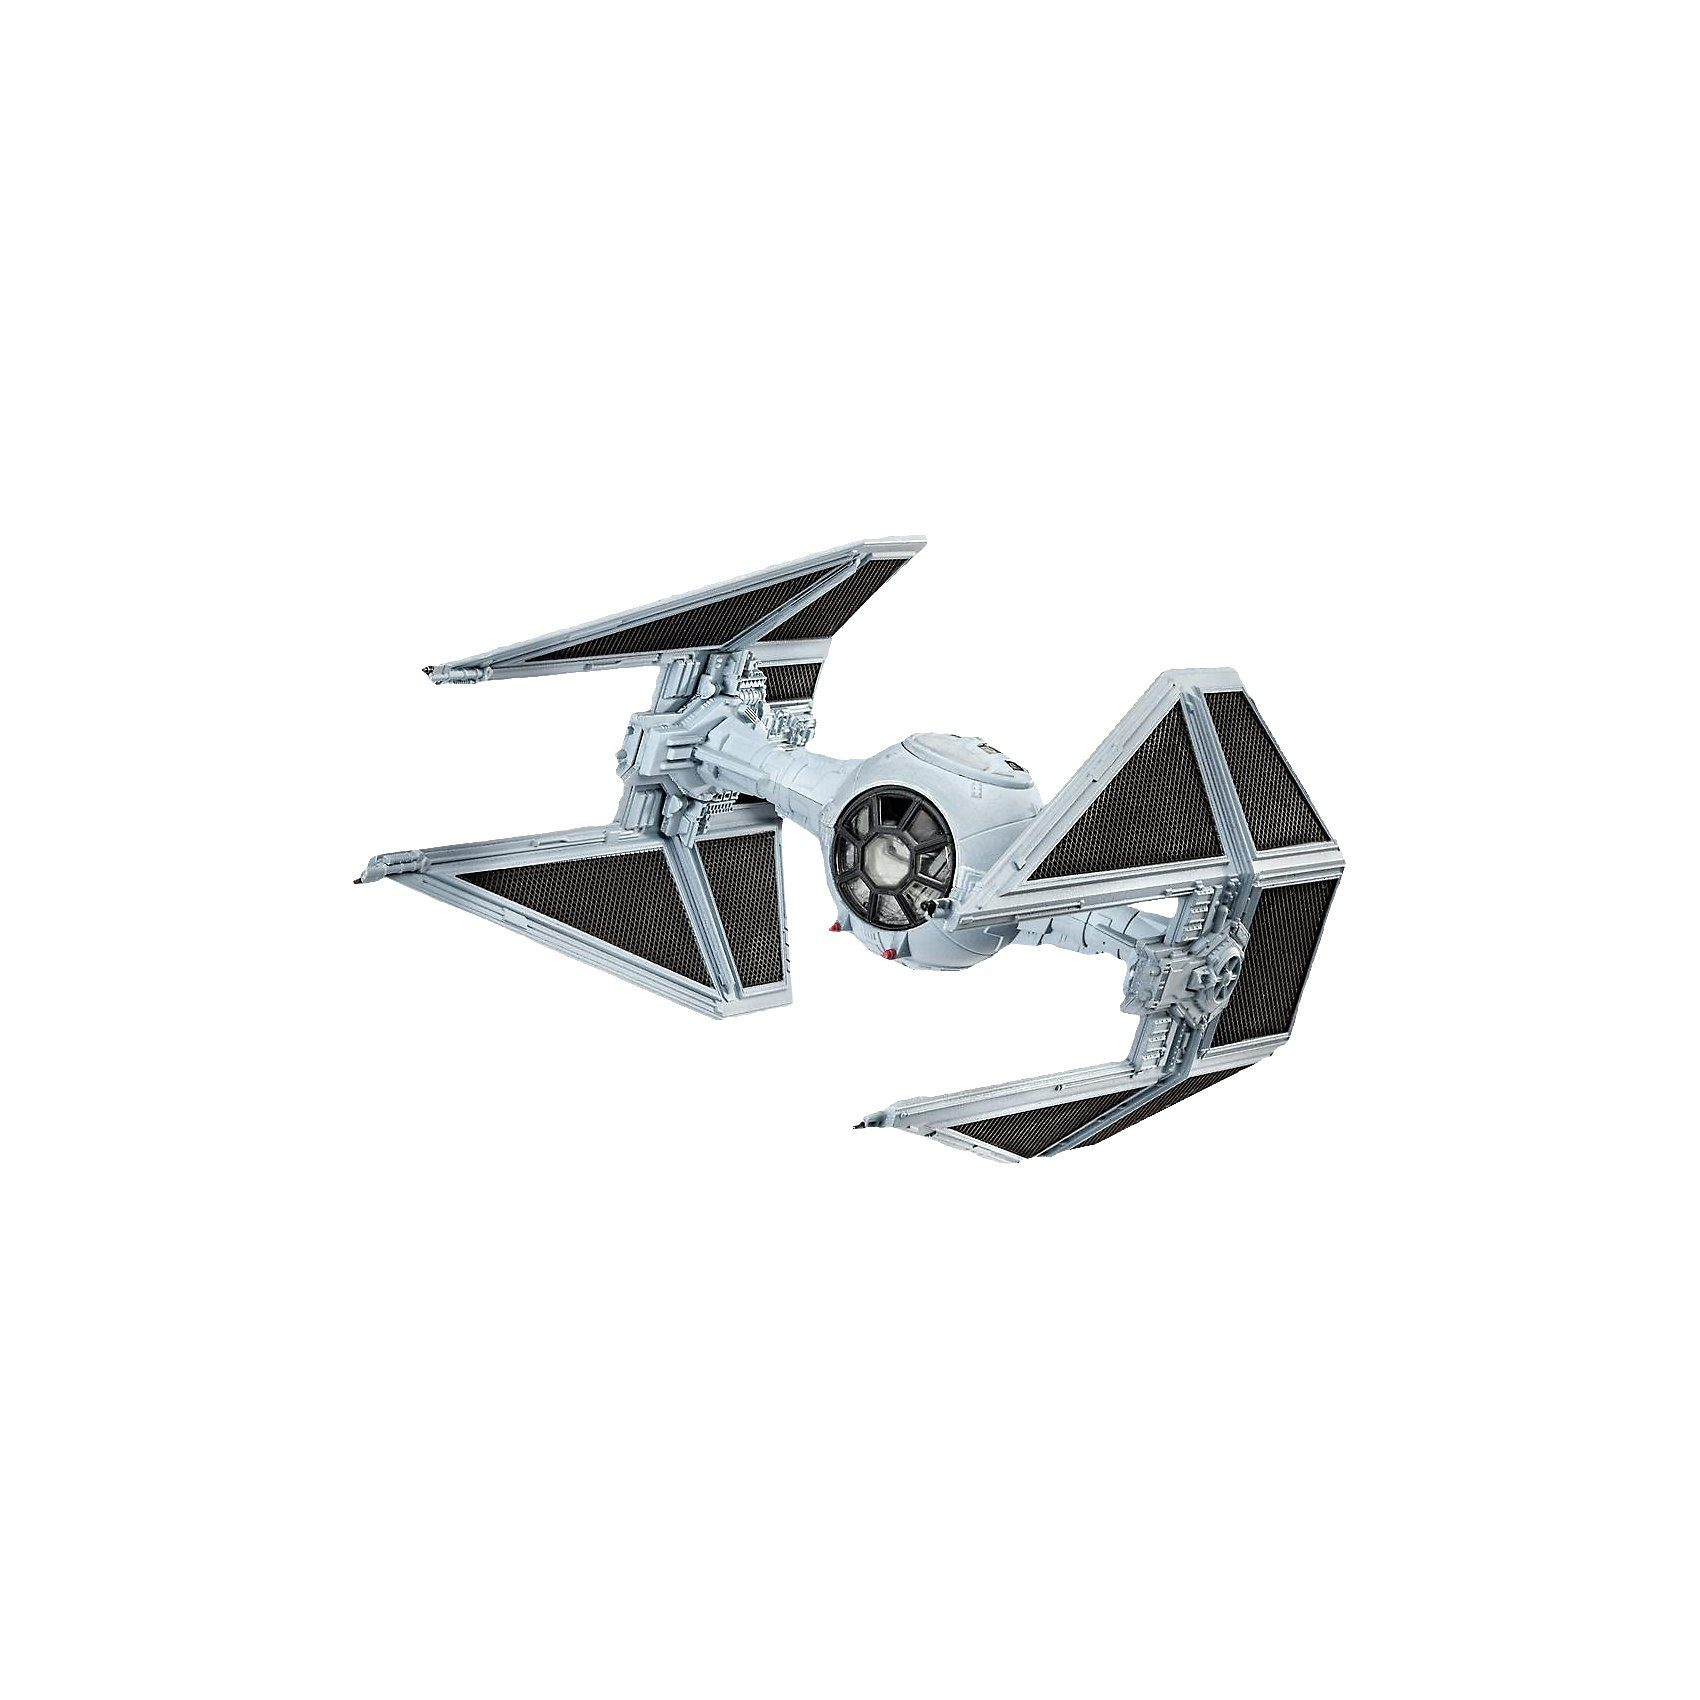 Revell Modellbausatz Star Wars TIE Interceptor